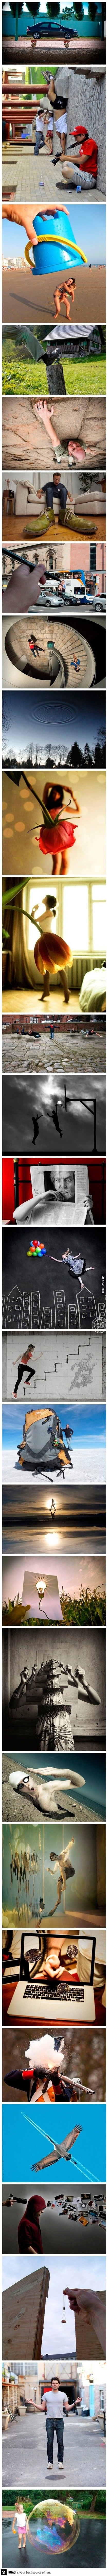 It's all about perspective